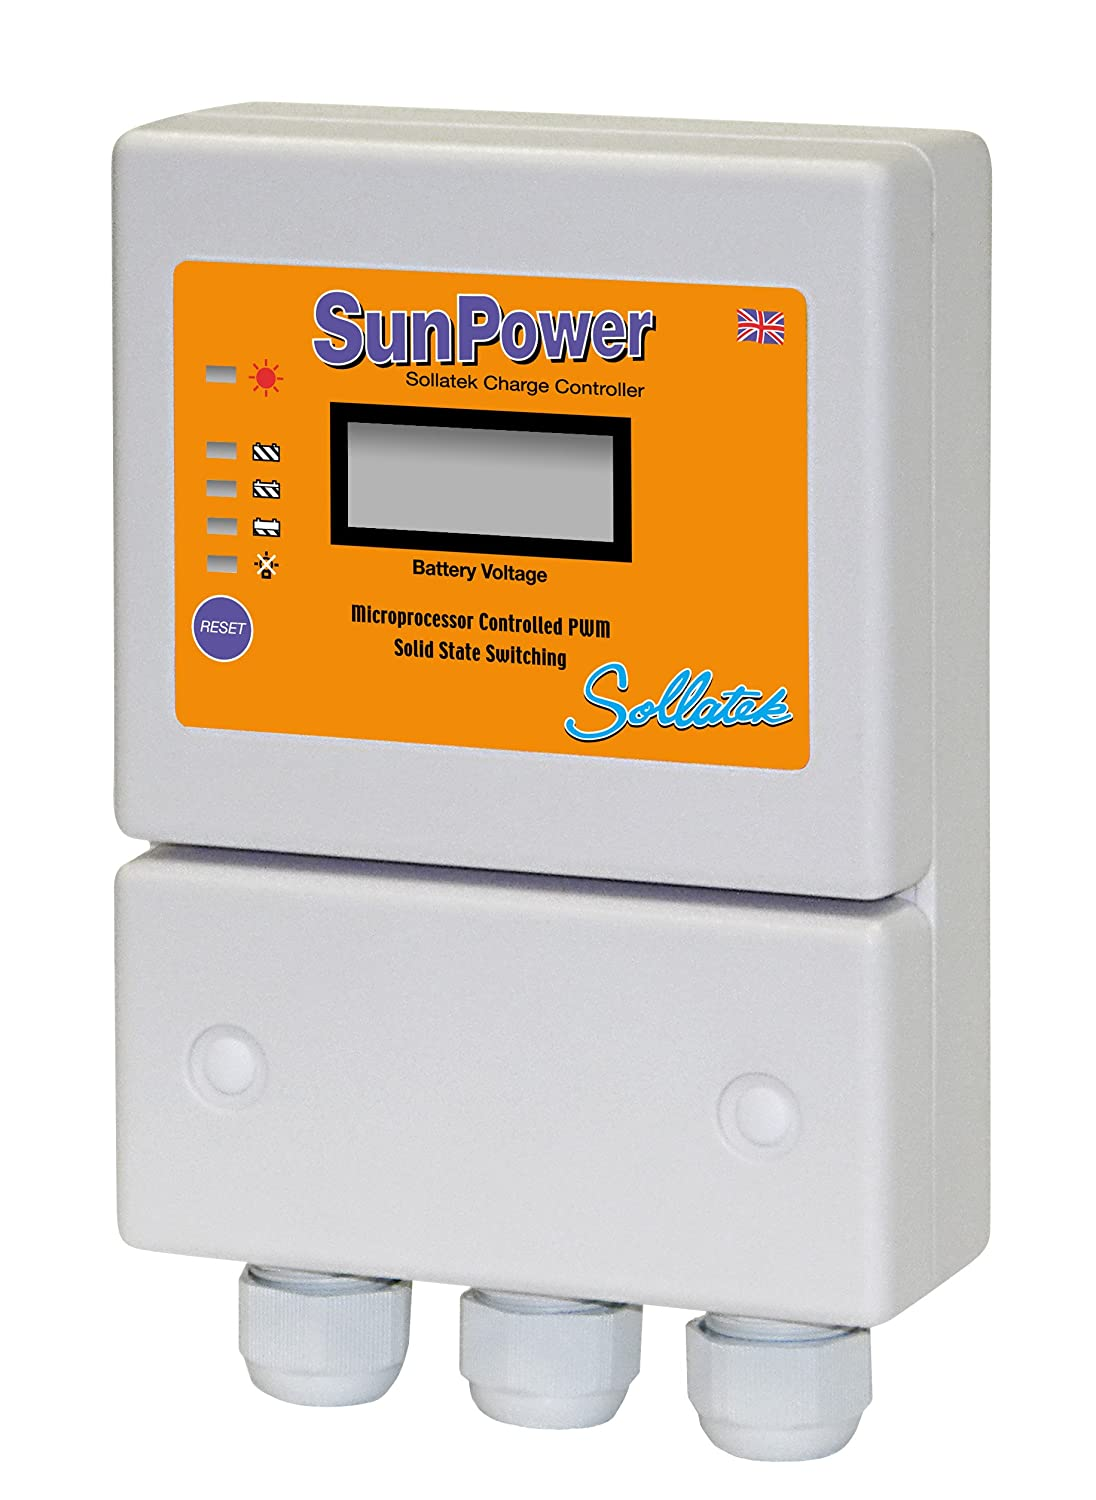 sollatek sunpower30 – 24, 30 Amps 24 V regulateru Traglasten von Akku mit LCD-Display